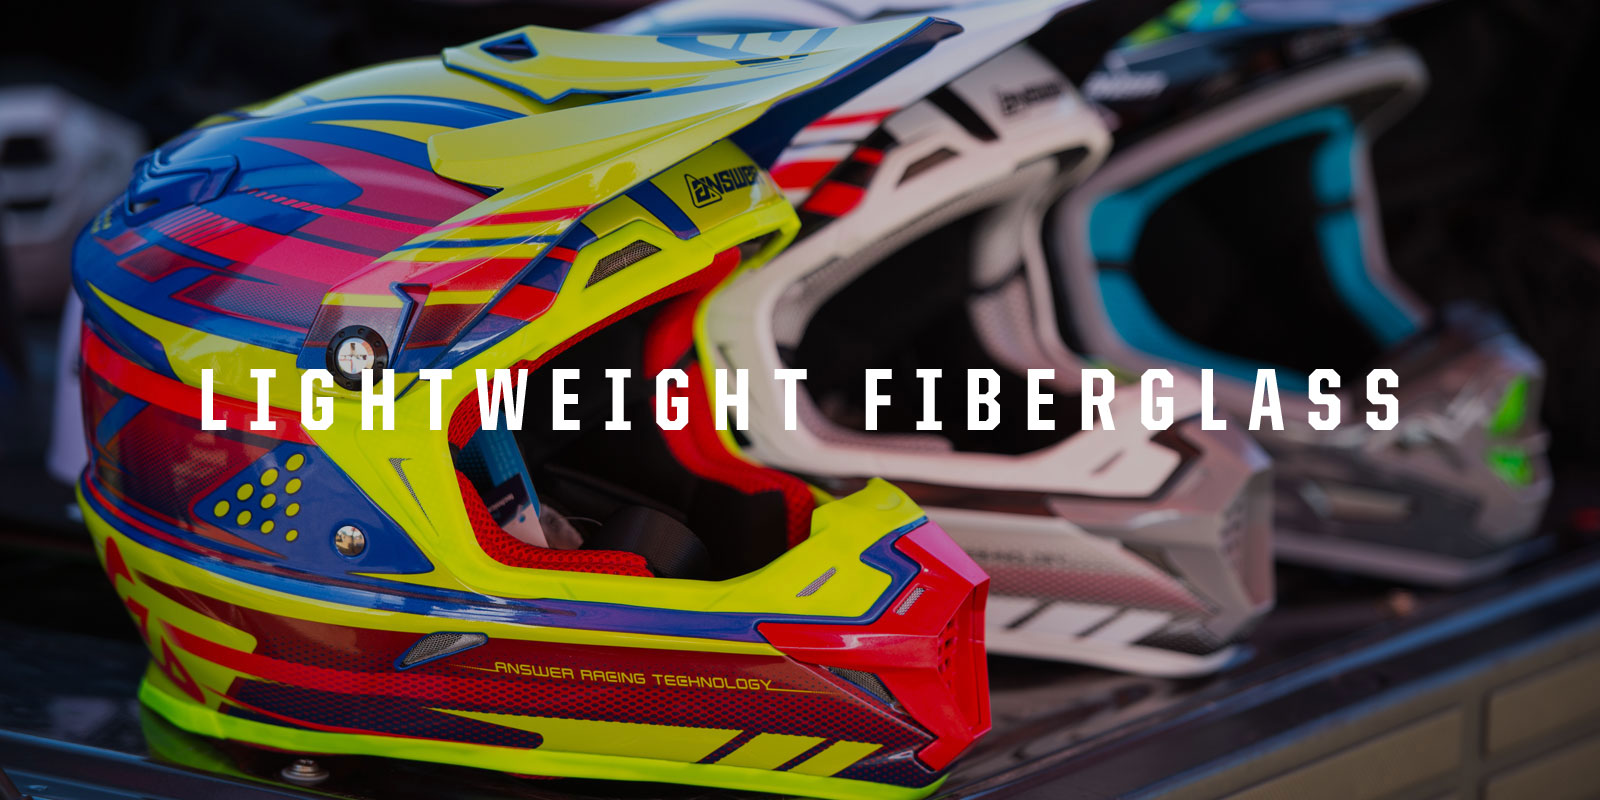 Lightweight Fiber Glass